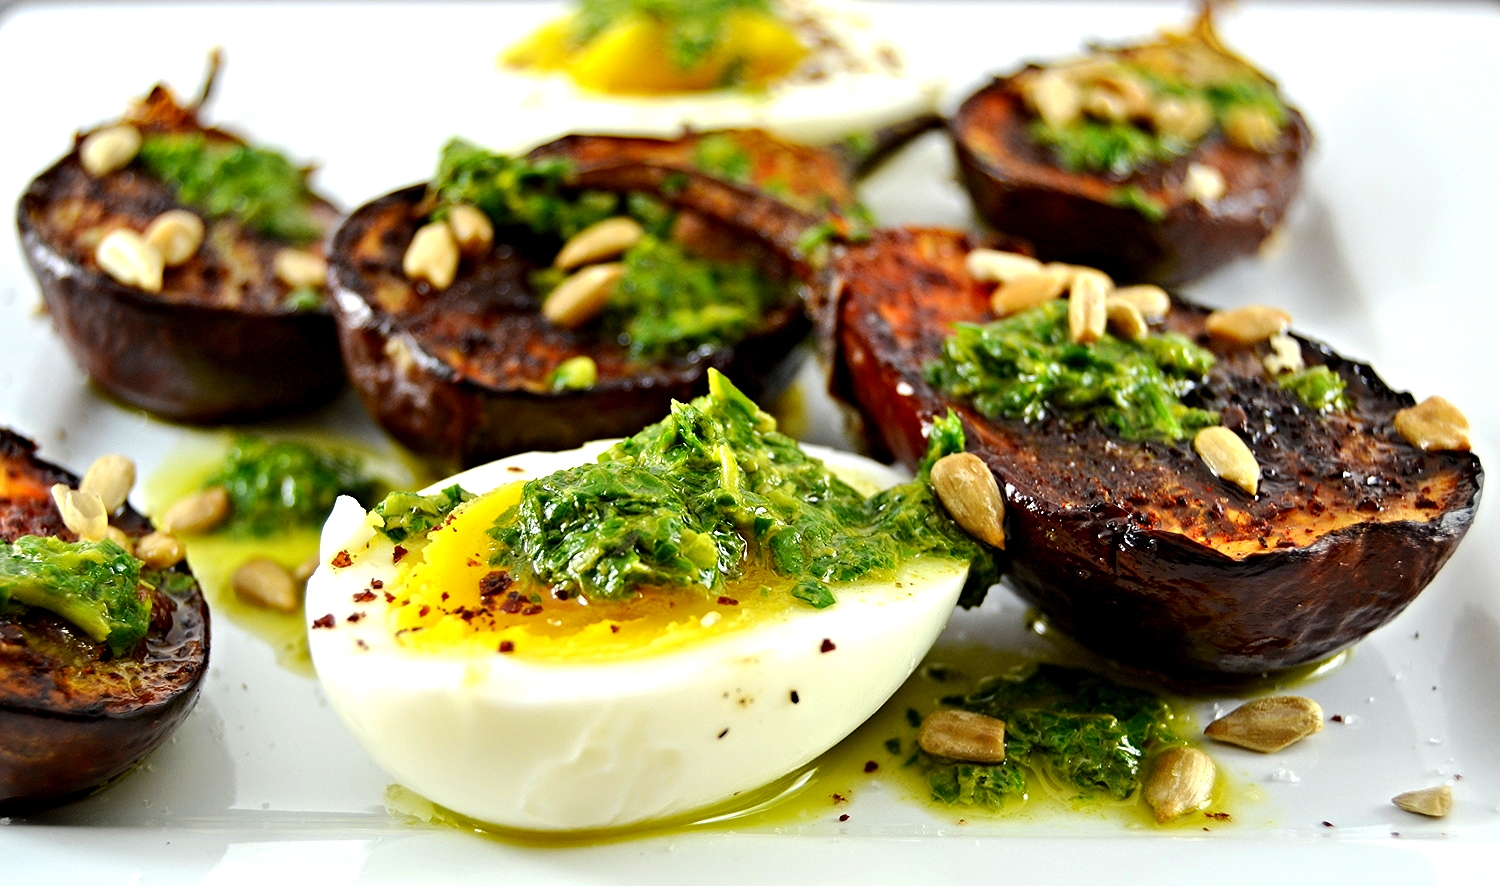 Sumac Roasted Eggplants with Salsa Verde